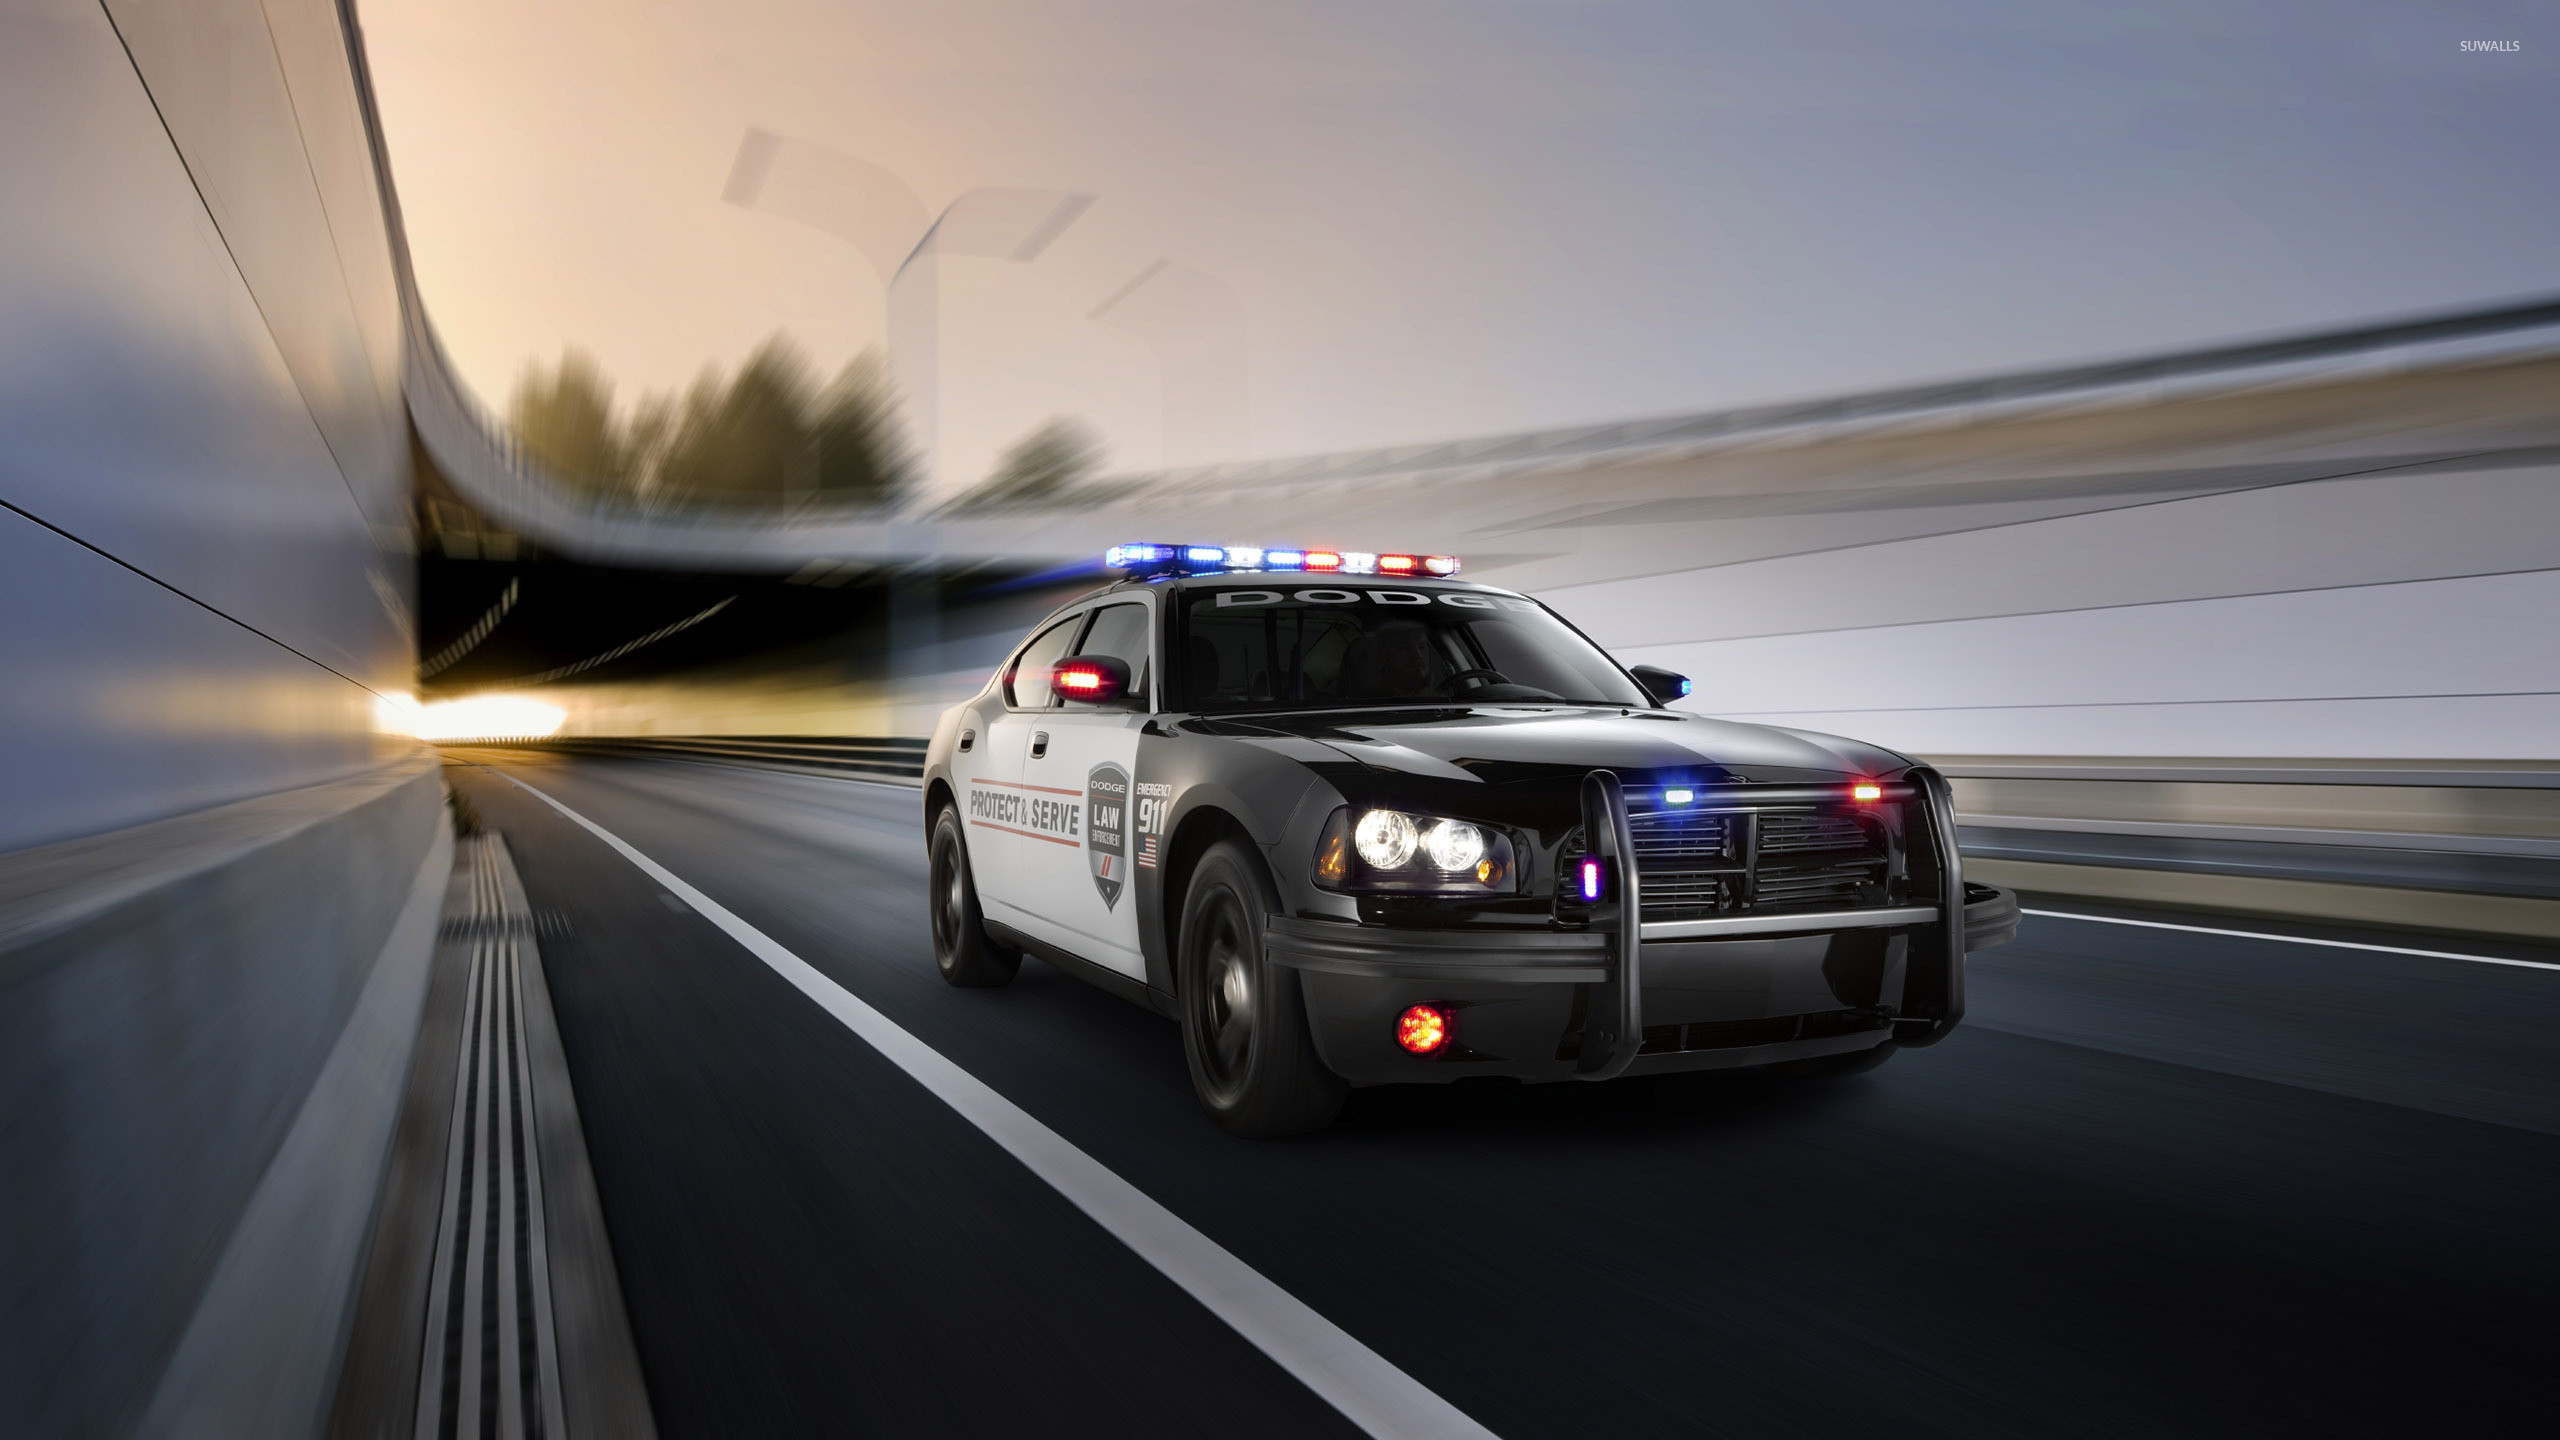 2560x1440 Police Car Wallpaper Hd Resolution